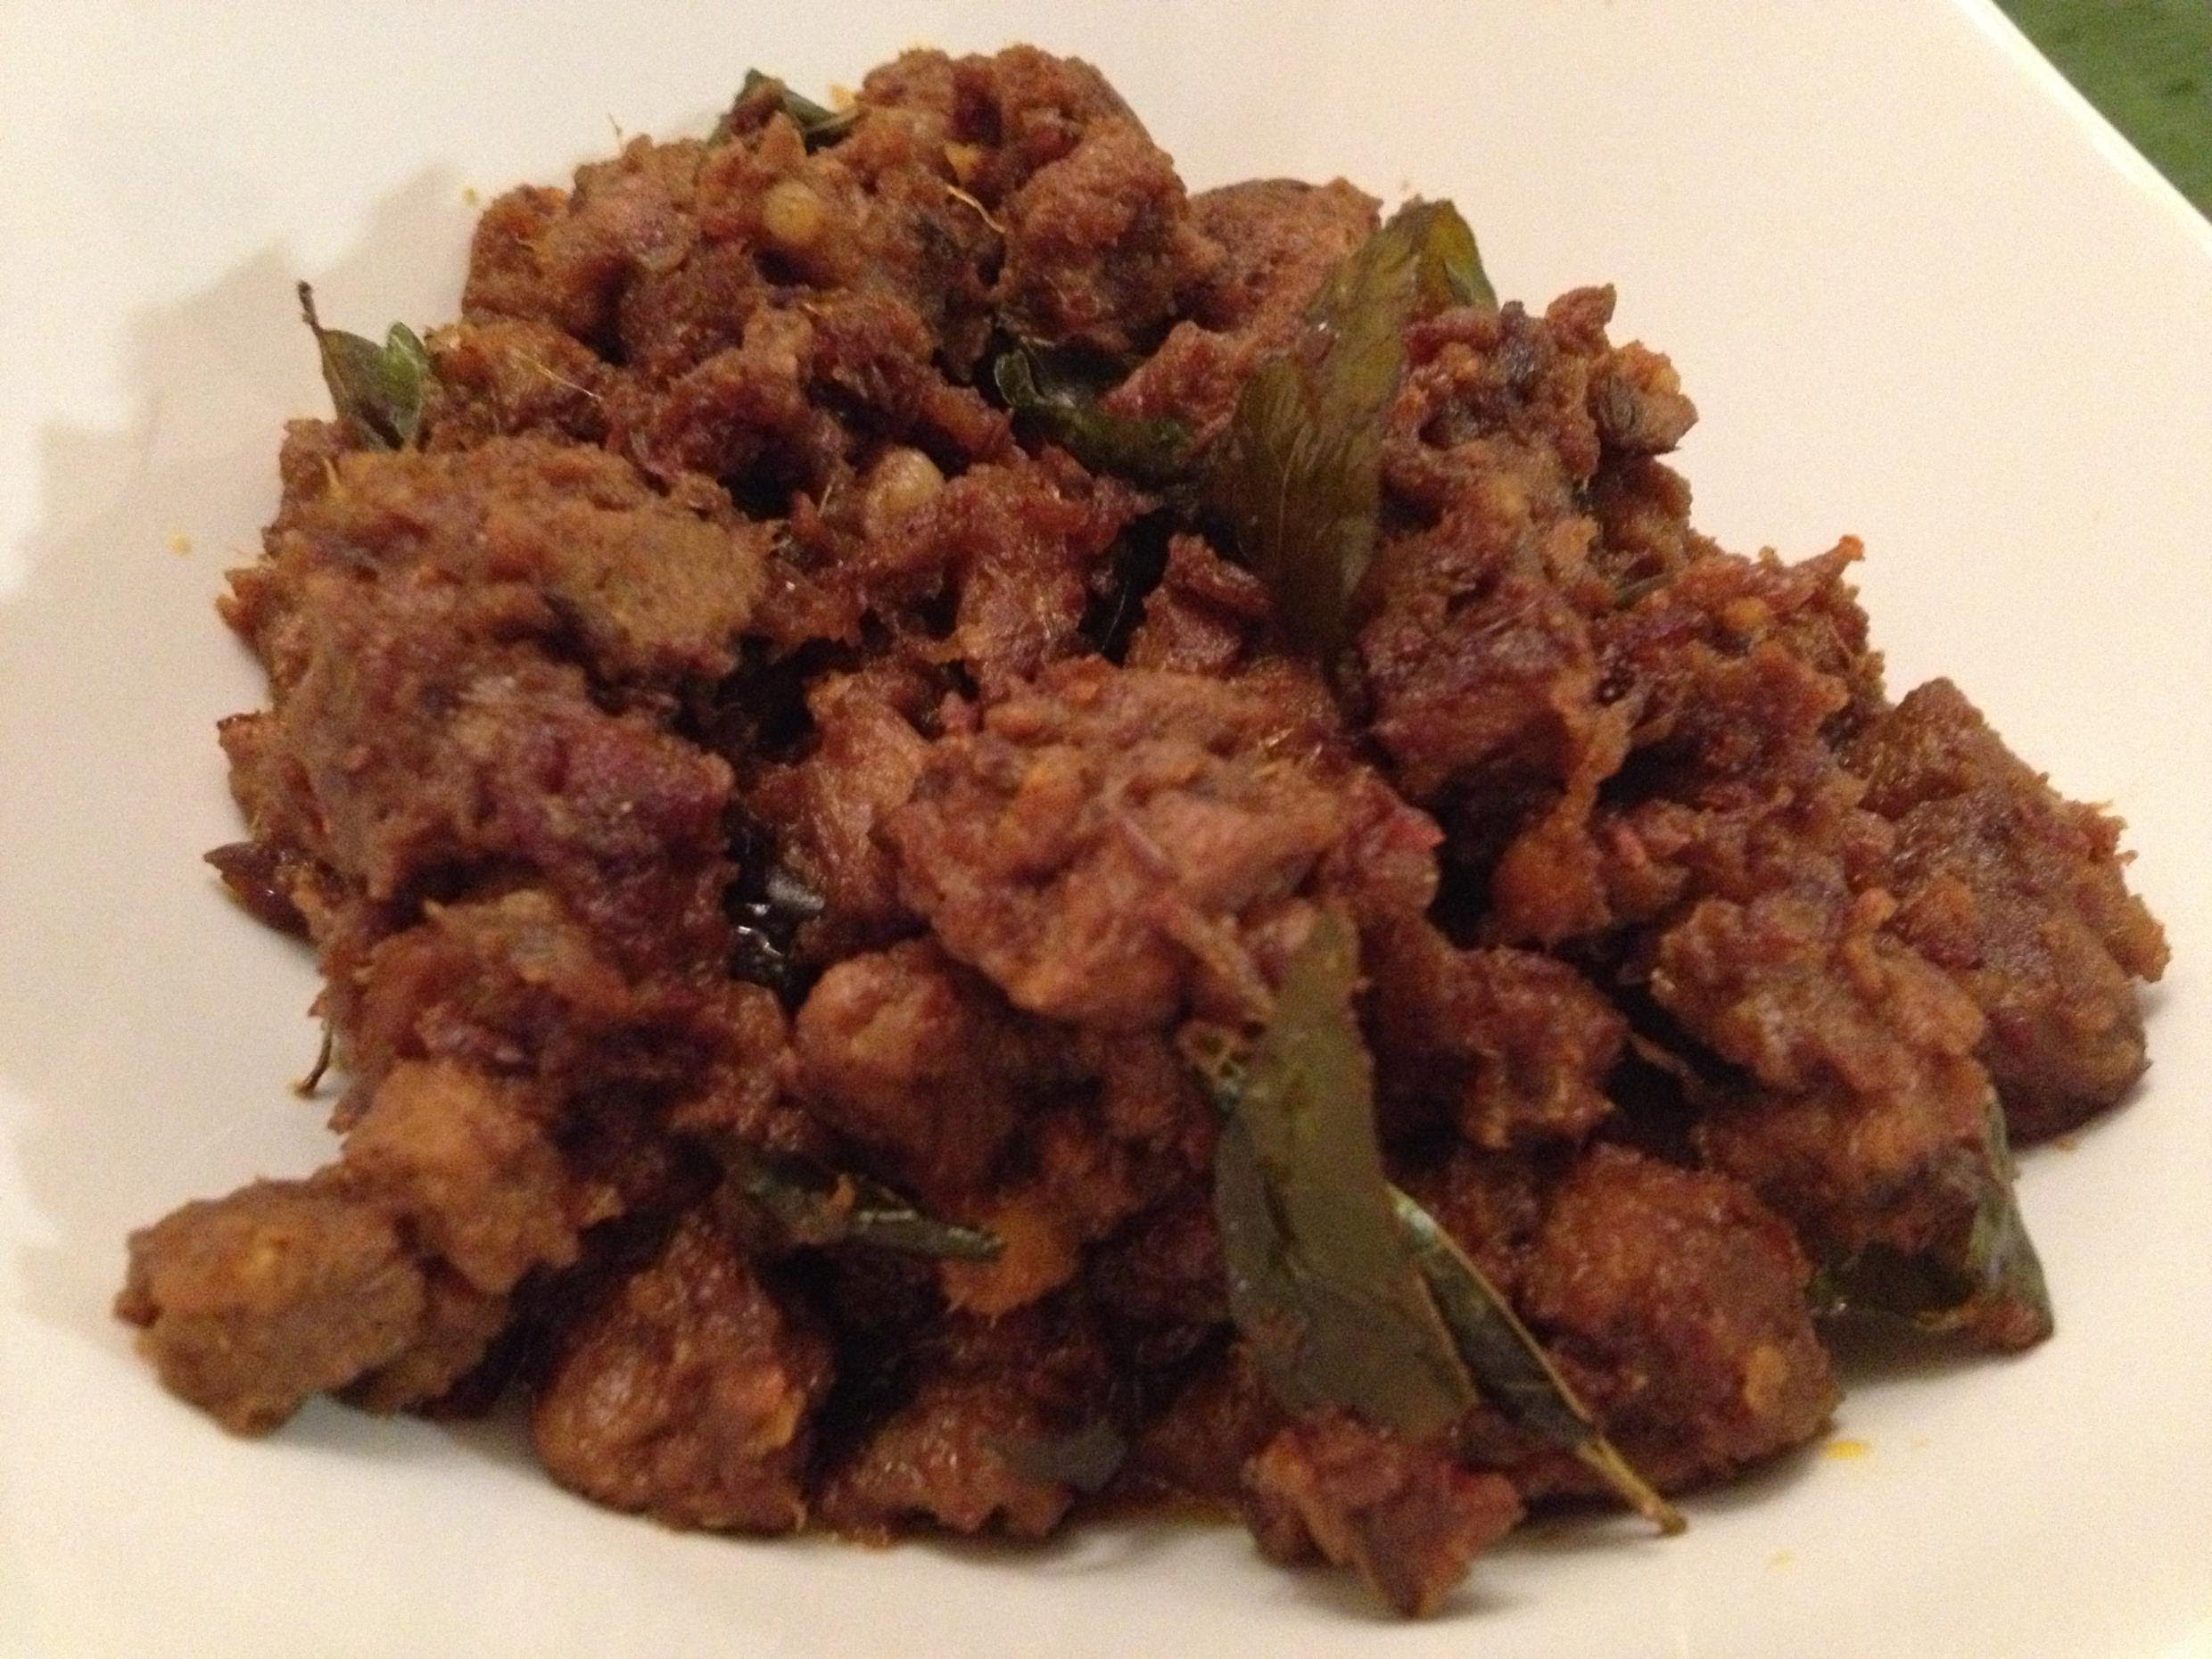 Mutton chukka recipe how to make mutton chukka recipe mutton fry forumfinder Image collections